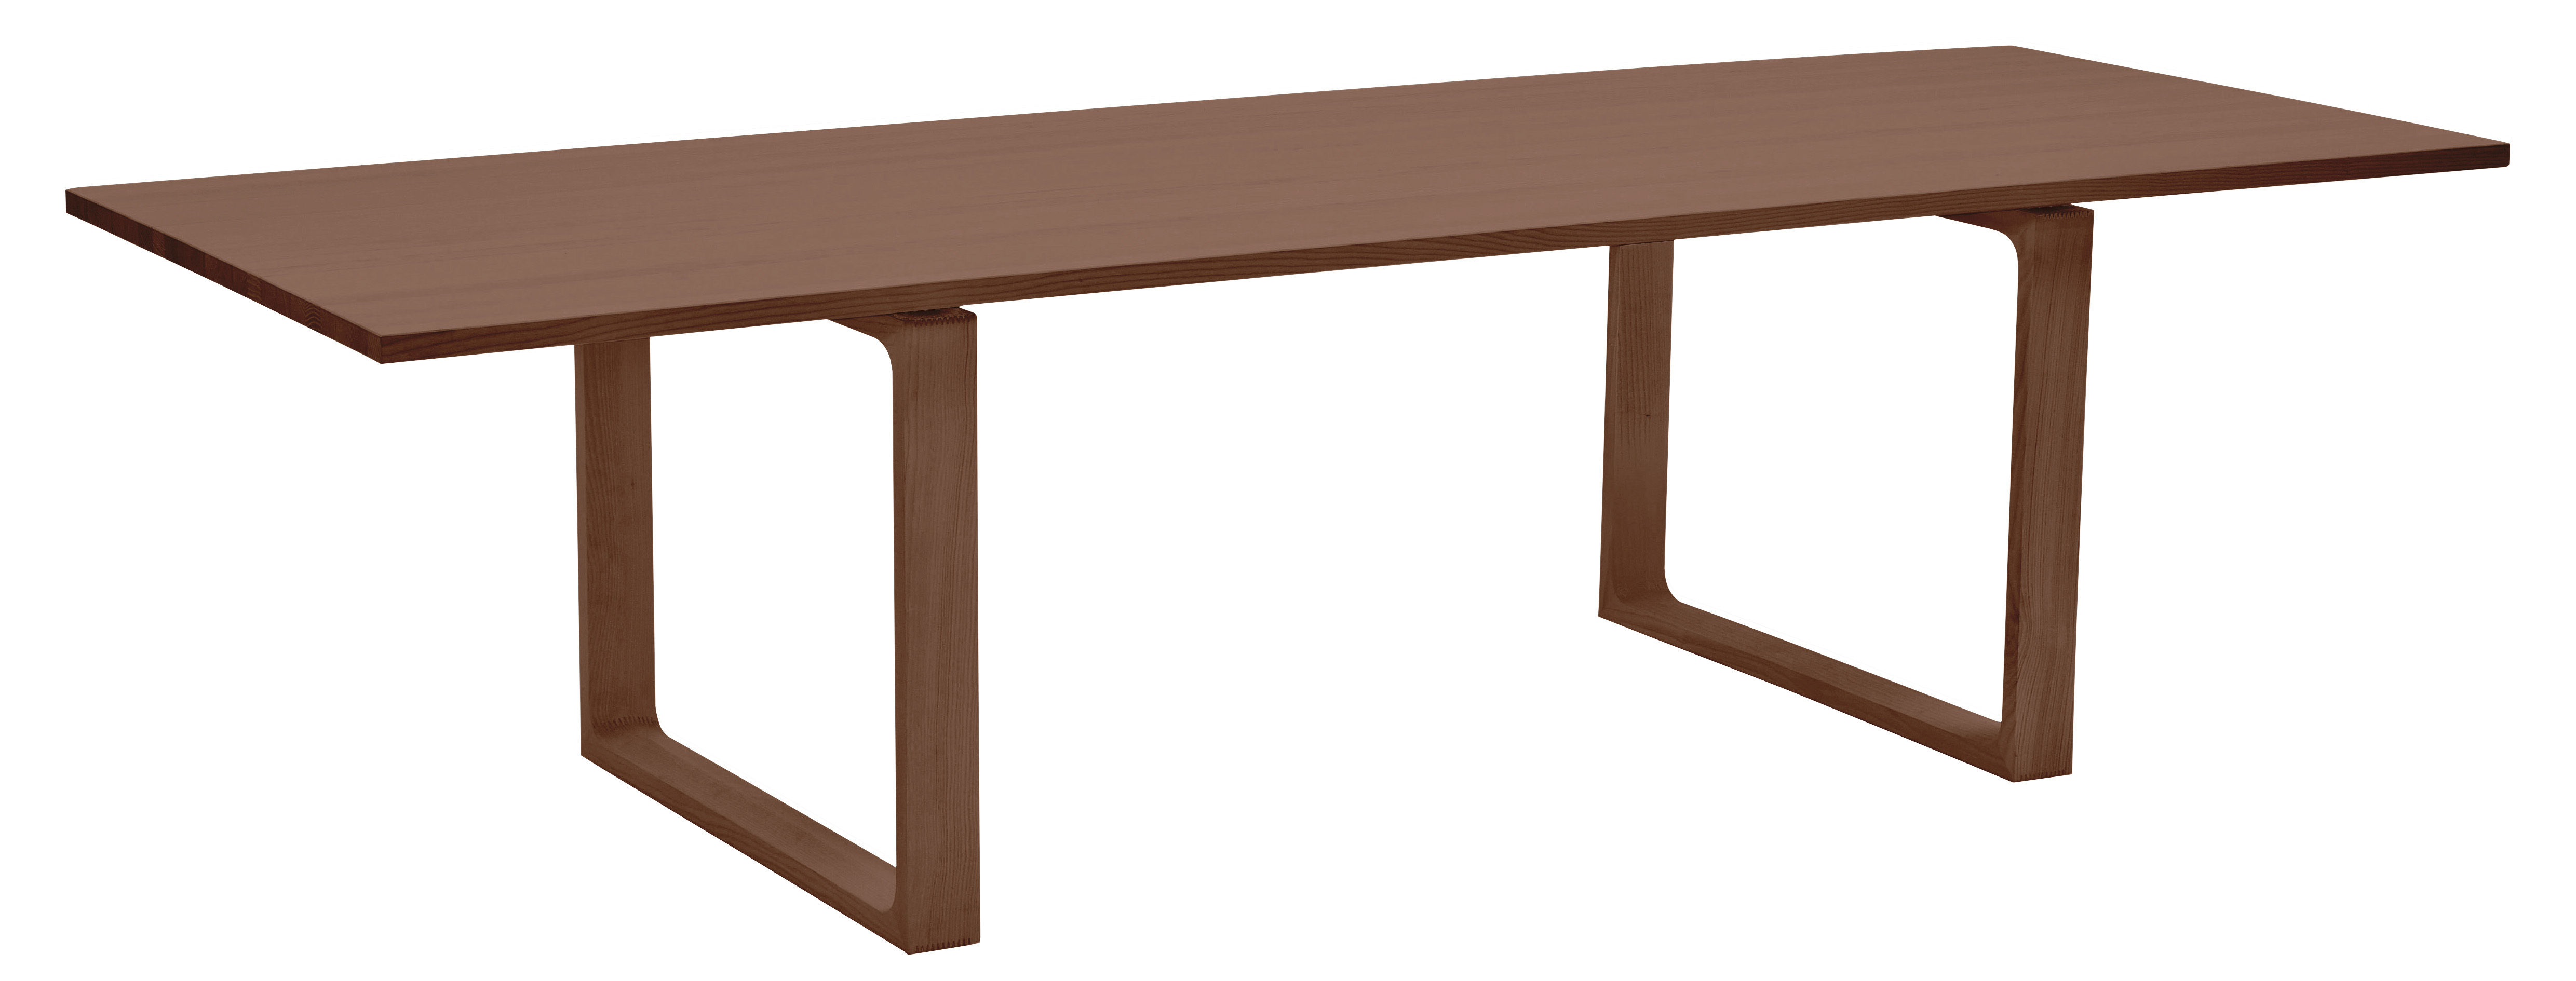 Furniture - Dining Tables - Essay Table rectangulaire - 265 x 100 cm by Fritz Hansen - Walnut - Solid walnut